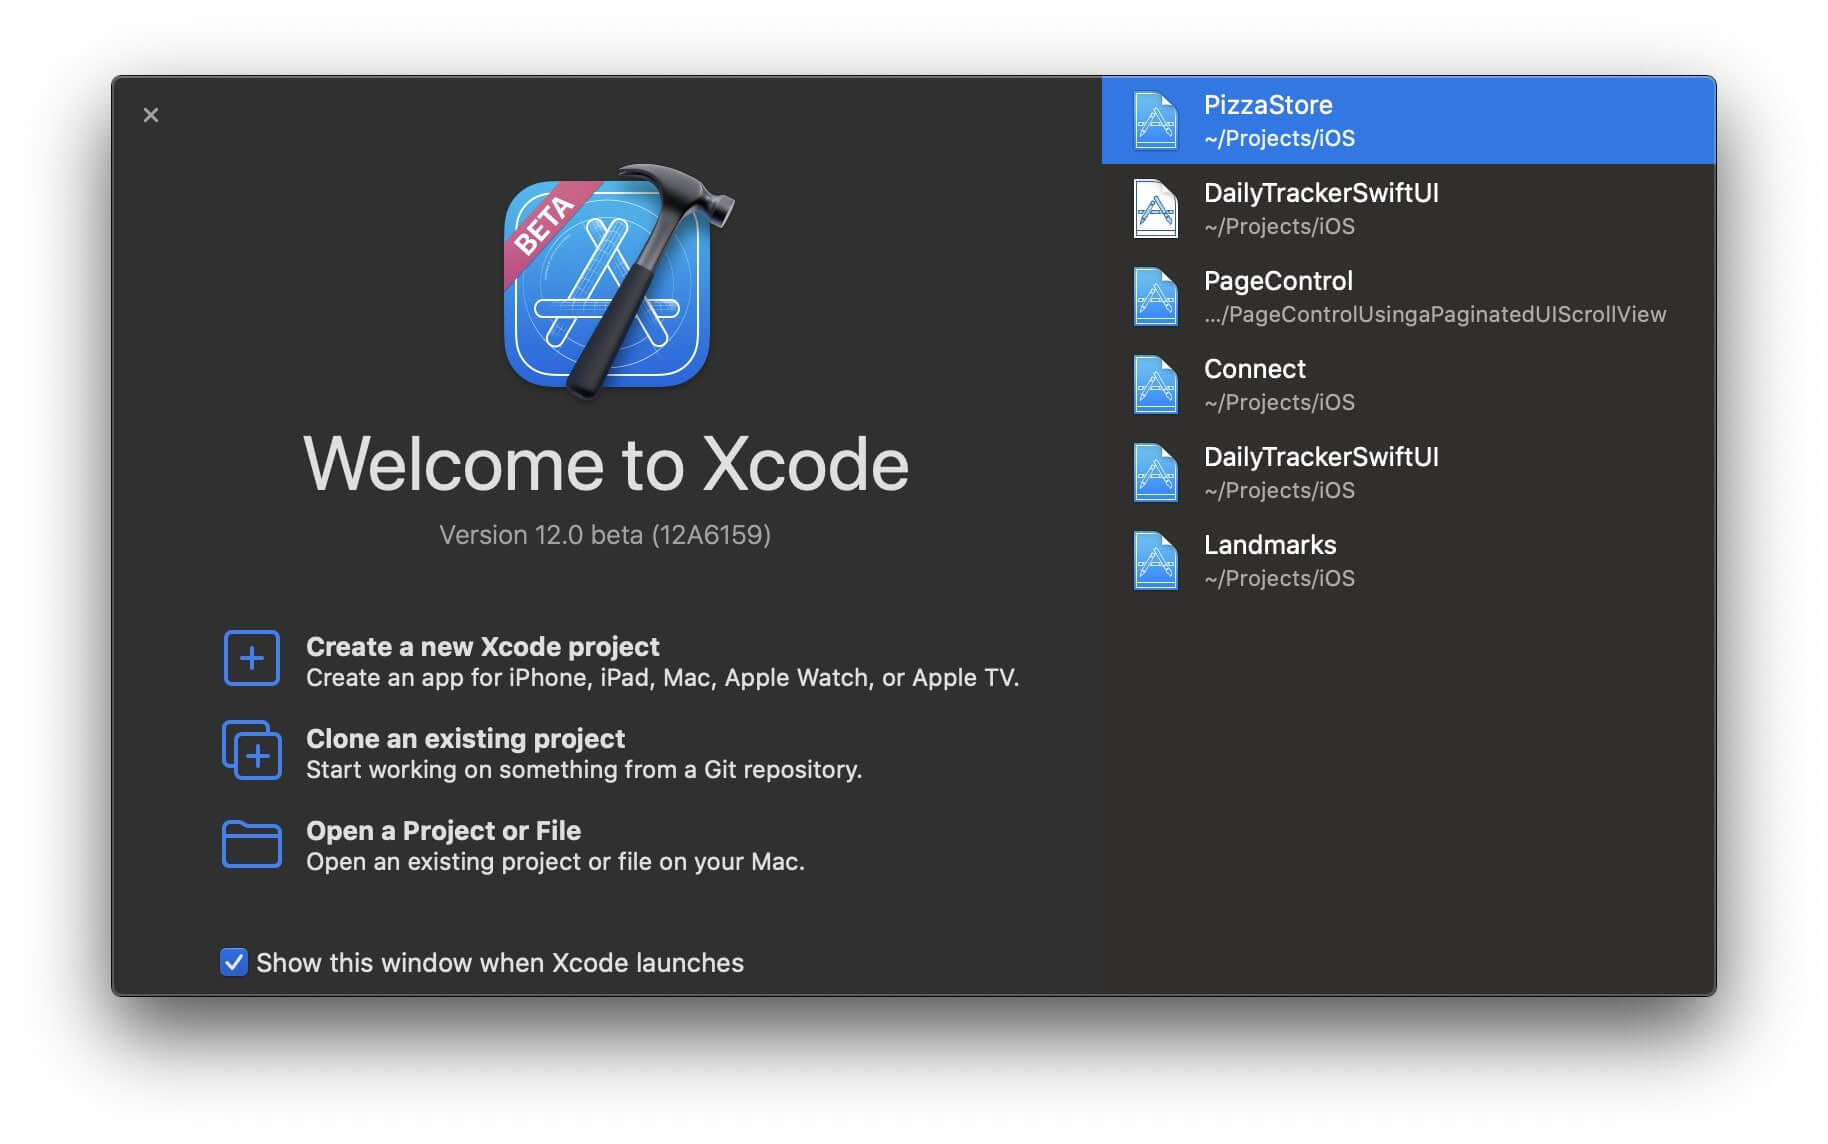 xcode12-beta-app-landing-screen